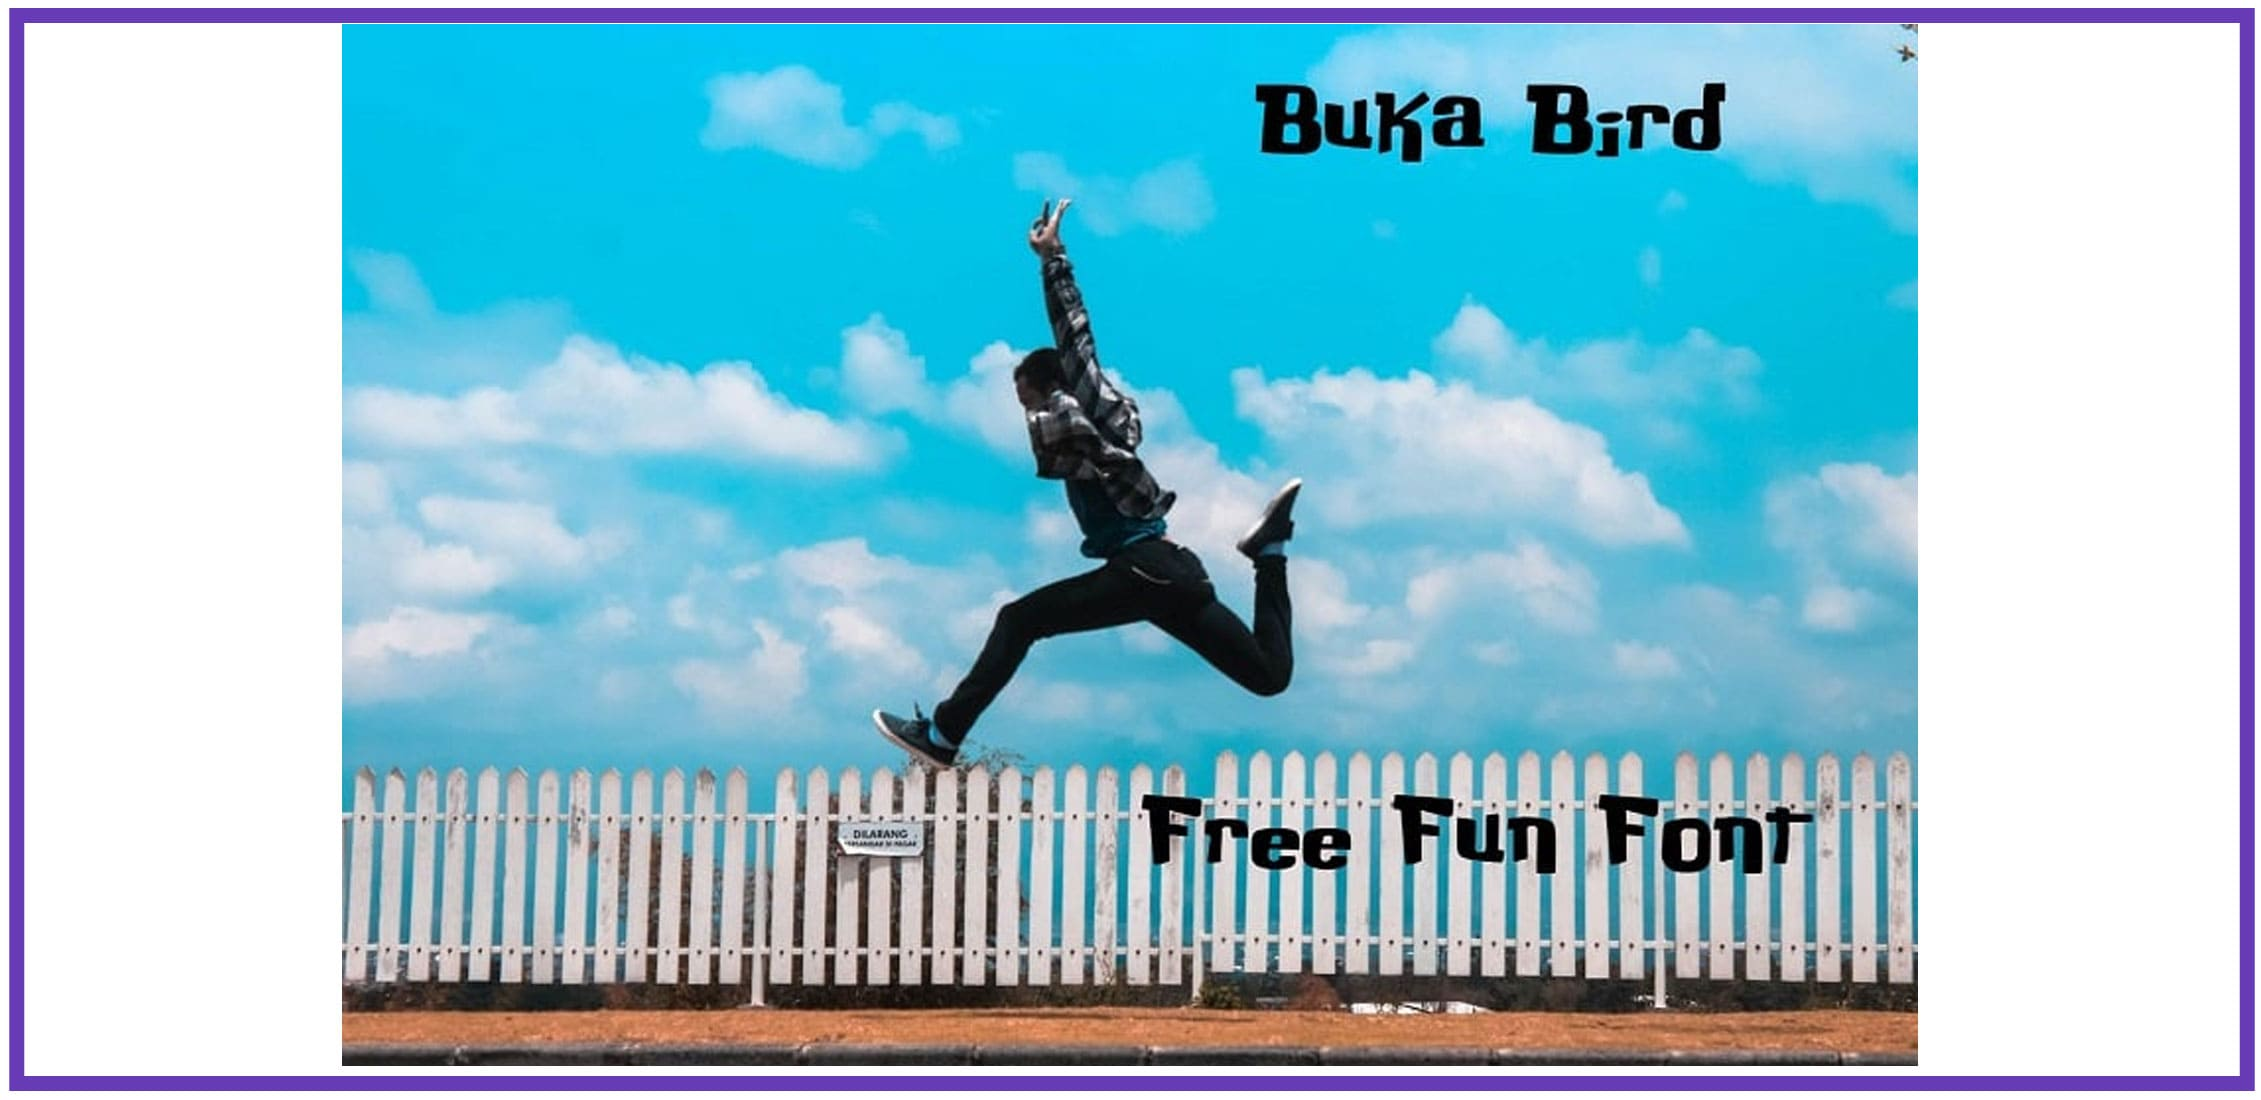 A boy in a jump on a background of sky and fence with a display fun font.